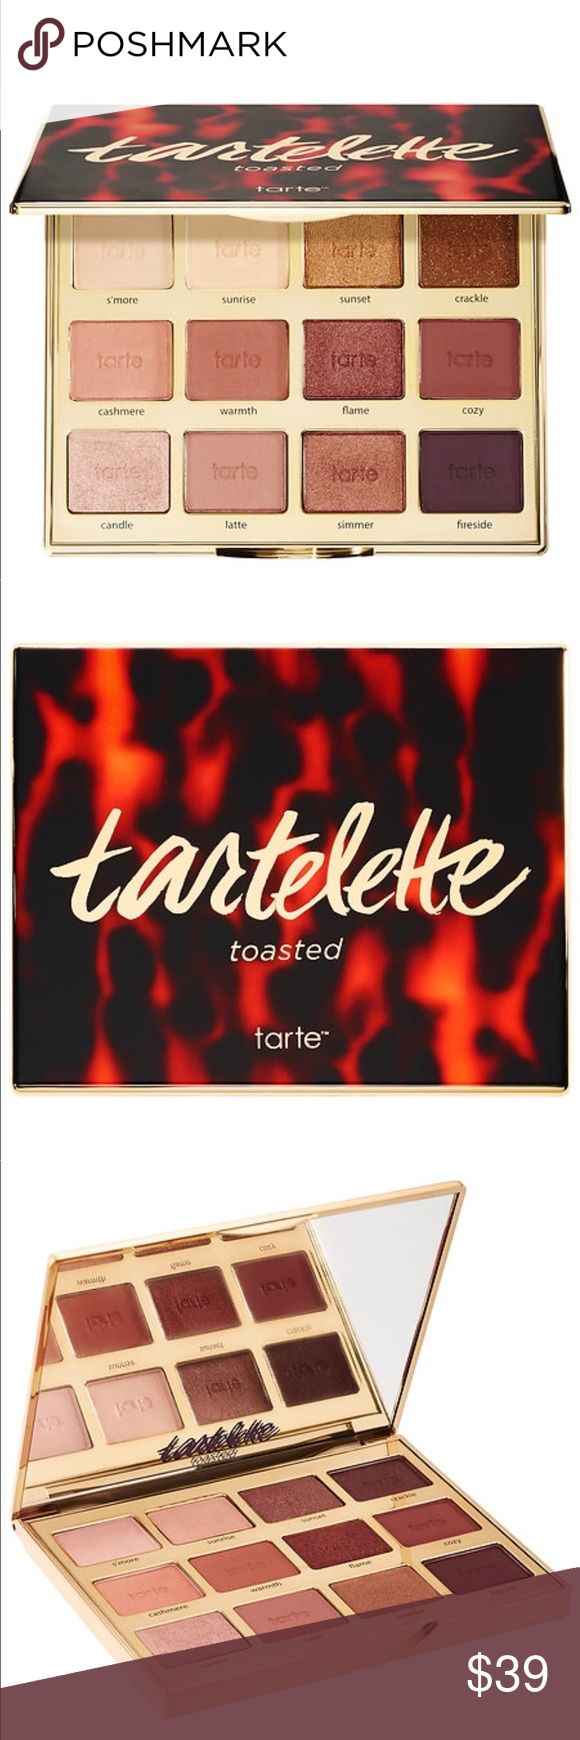 NIB TARTE Tartelette TOASTED Eyeshadow Palette Brand new in box. This set contains: - 12 x 0.053 oz/ 1.5 g Eyeshadows in S'more (pinky beige), Sunrise (golden beige), Sunset (bronze), Crackle (brown with gold flecks), Cashmere (pale peach), Warmth (terracotta), Flame (metallic rust), Cozy (brick), Candle (champagne), Latte (tan), Simmer (copper), Fireside (deep plum) This palette is ophthalmologist- and dermatologist-tested. It's also safe for contact lens wearers. tarte Makeup Eyeshadow